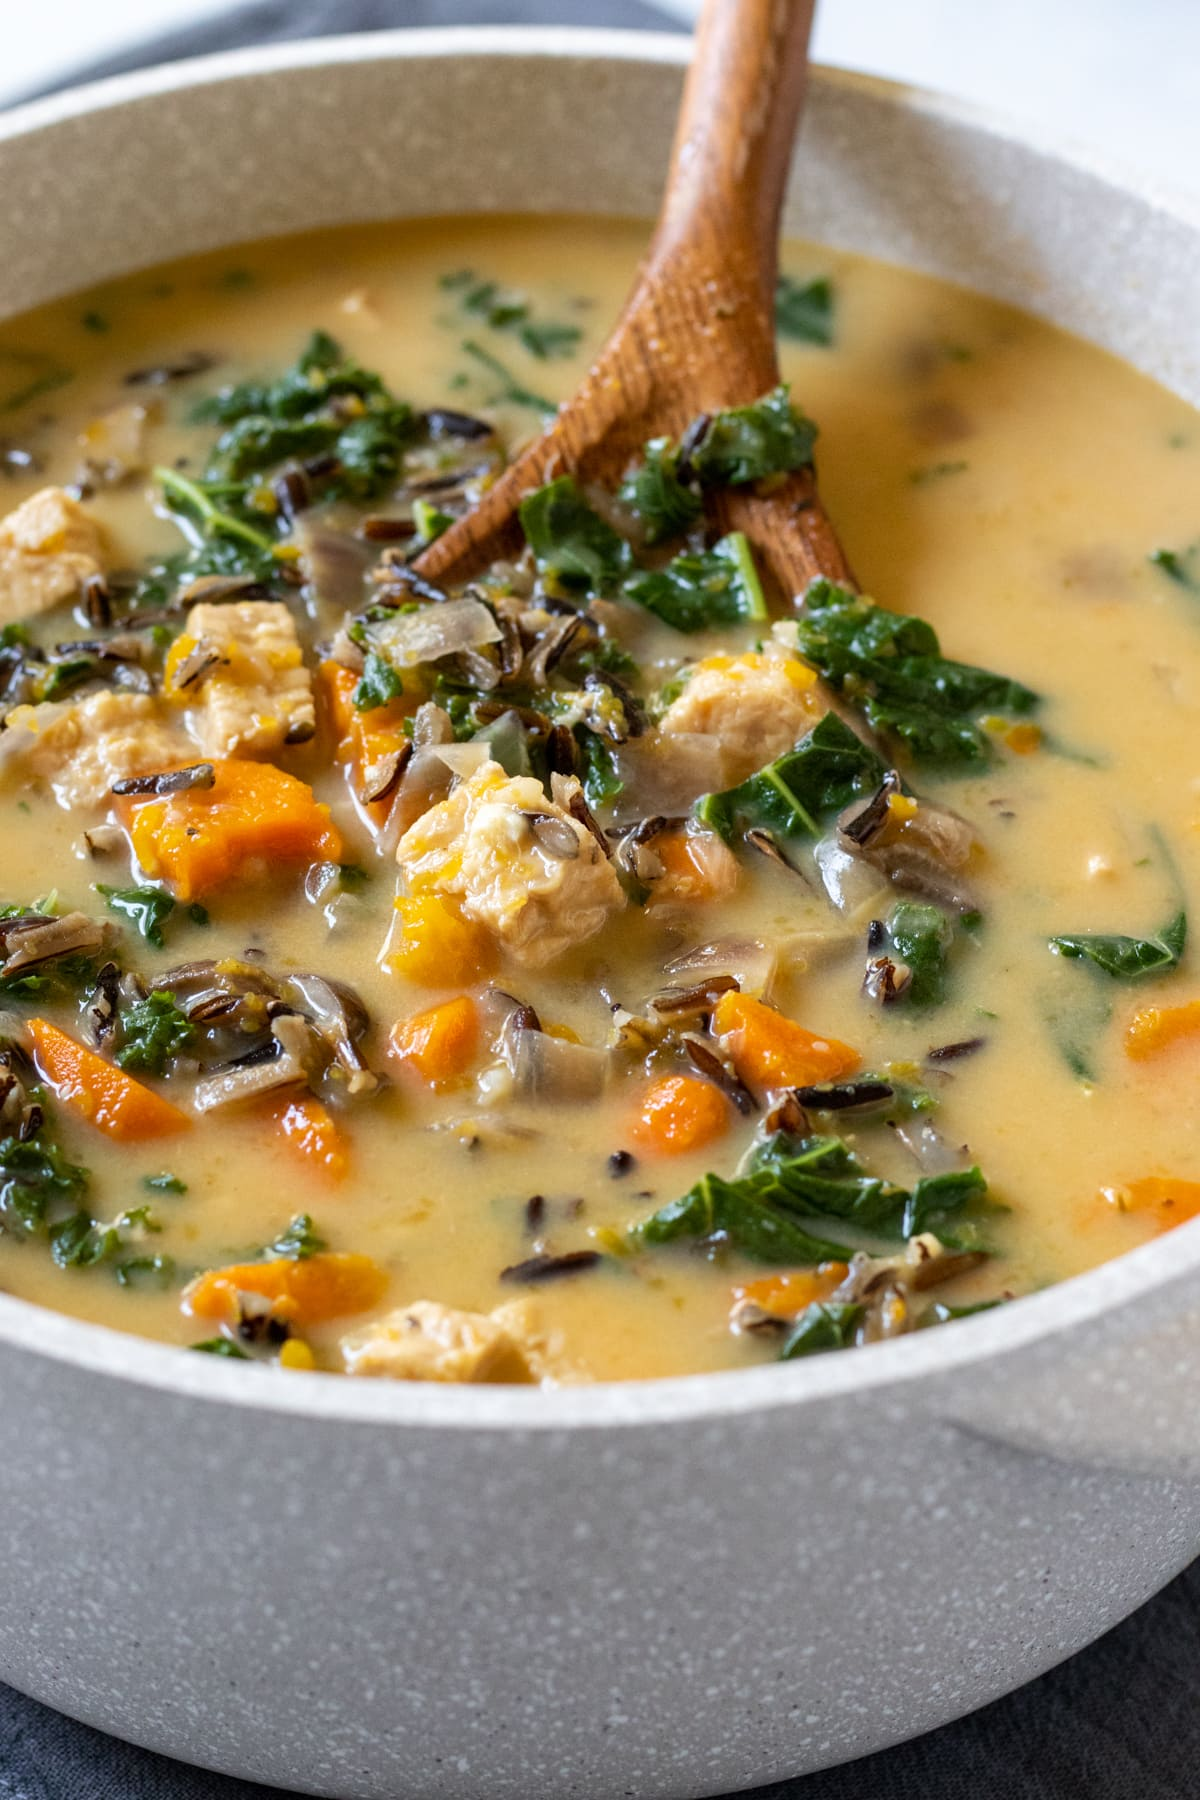 colorful soup with kale, squash, carrots, and wild rice in a pot